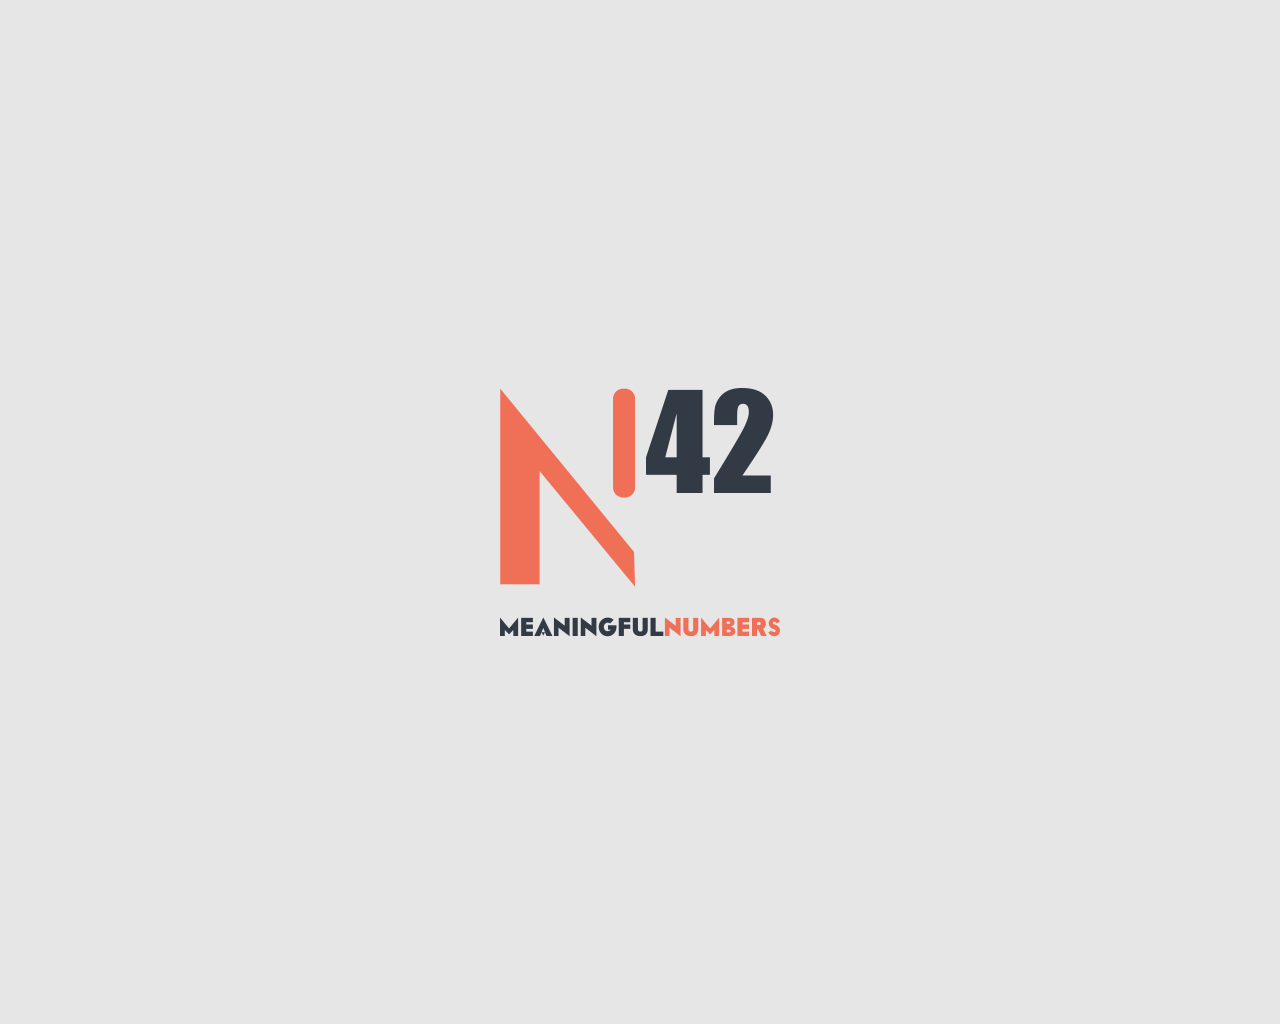 Logo Design by Q_Division_Designs - Entry No. 64 in the Logo Design Contest Artistic Logo Design for Number 42.